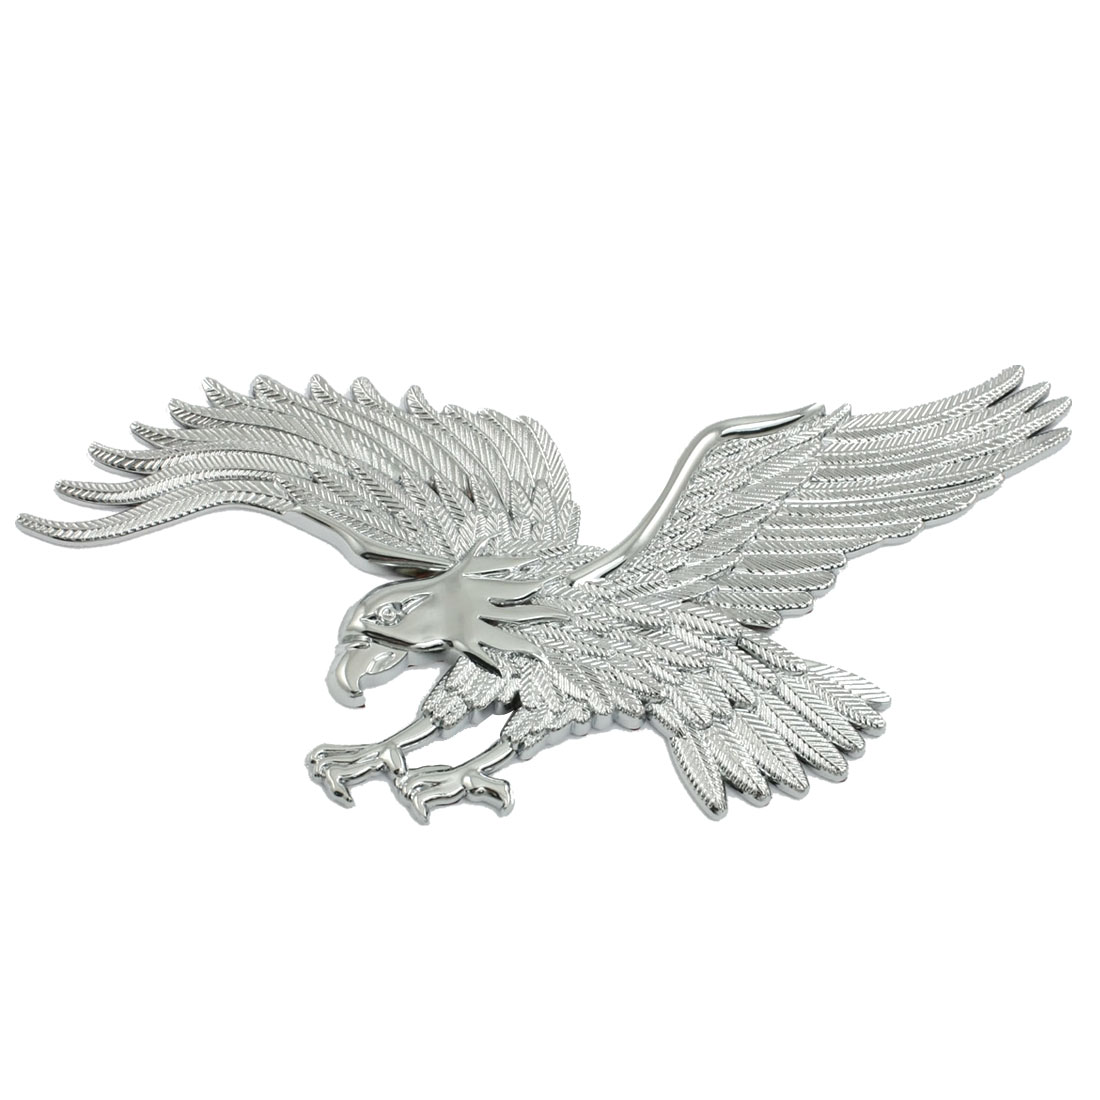 Silver Tone Flying Eagle Shaped Self Adhesive Truck Car Badge Sticker